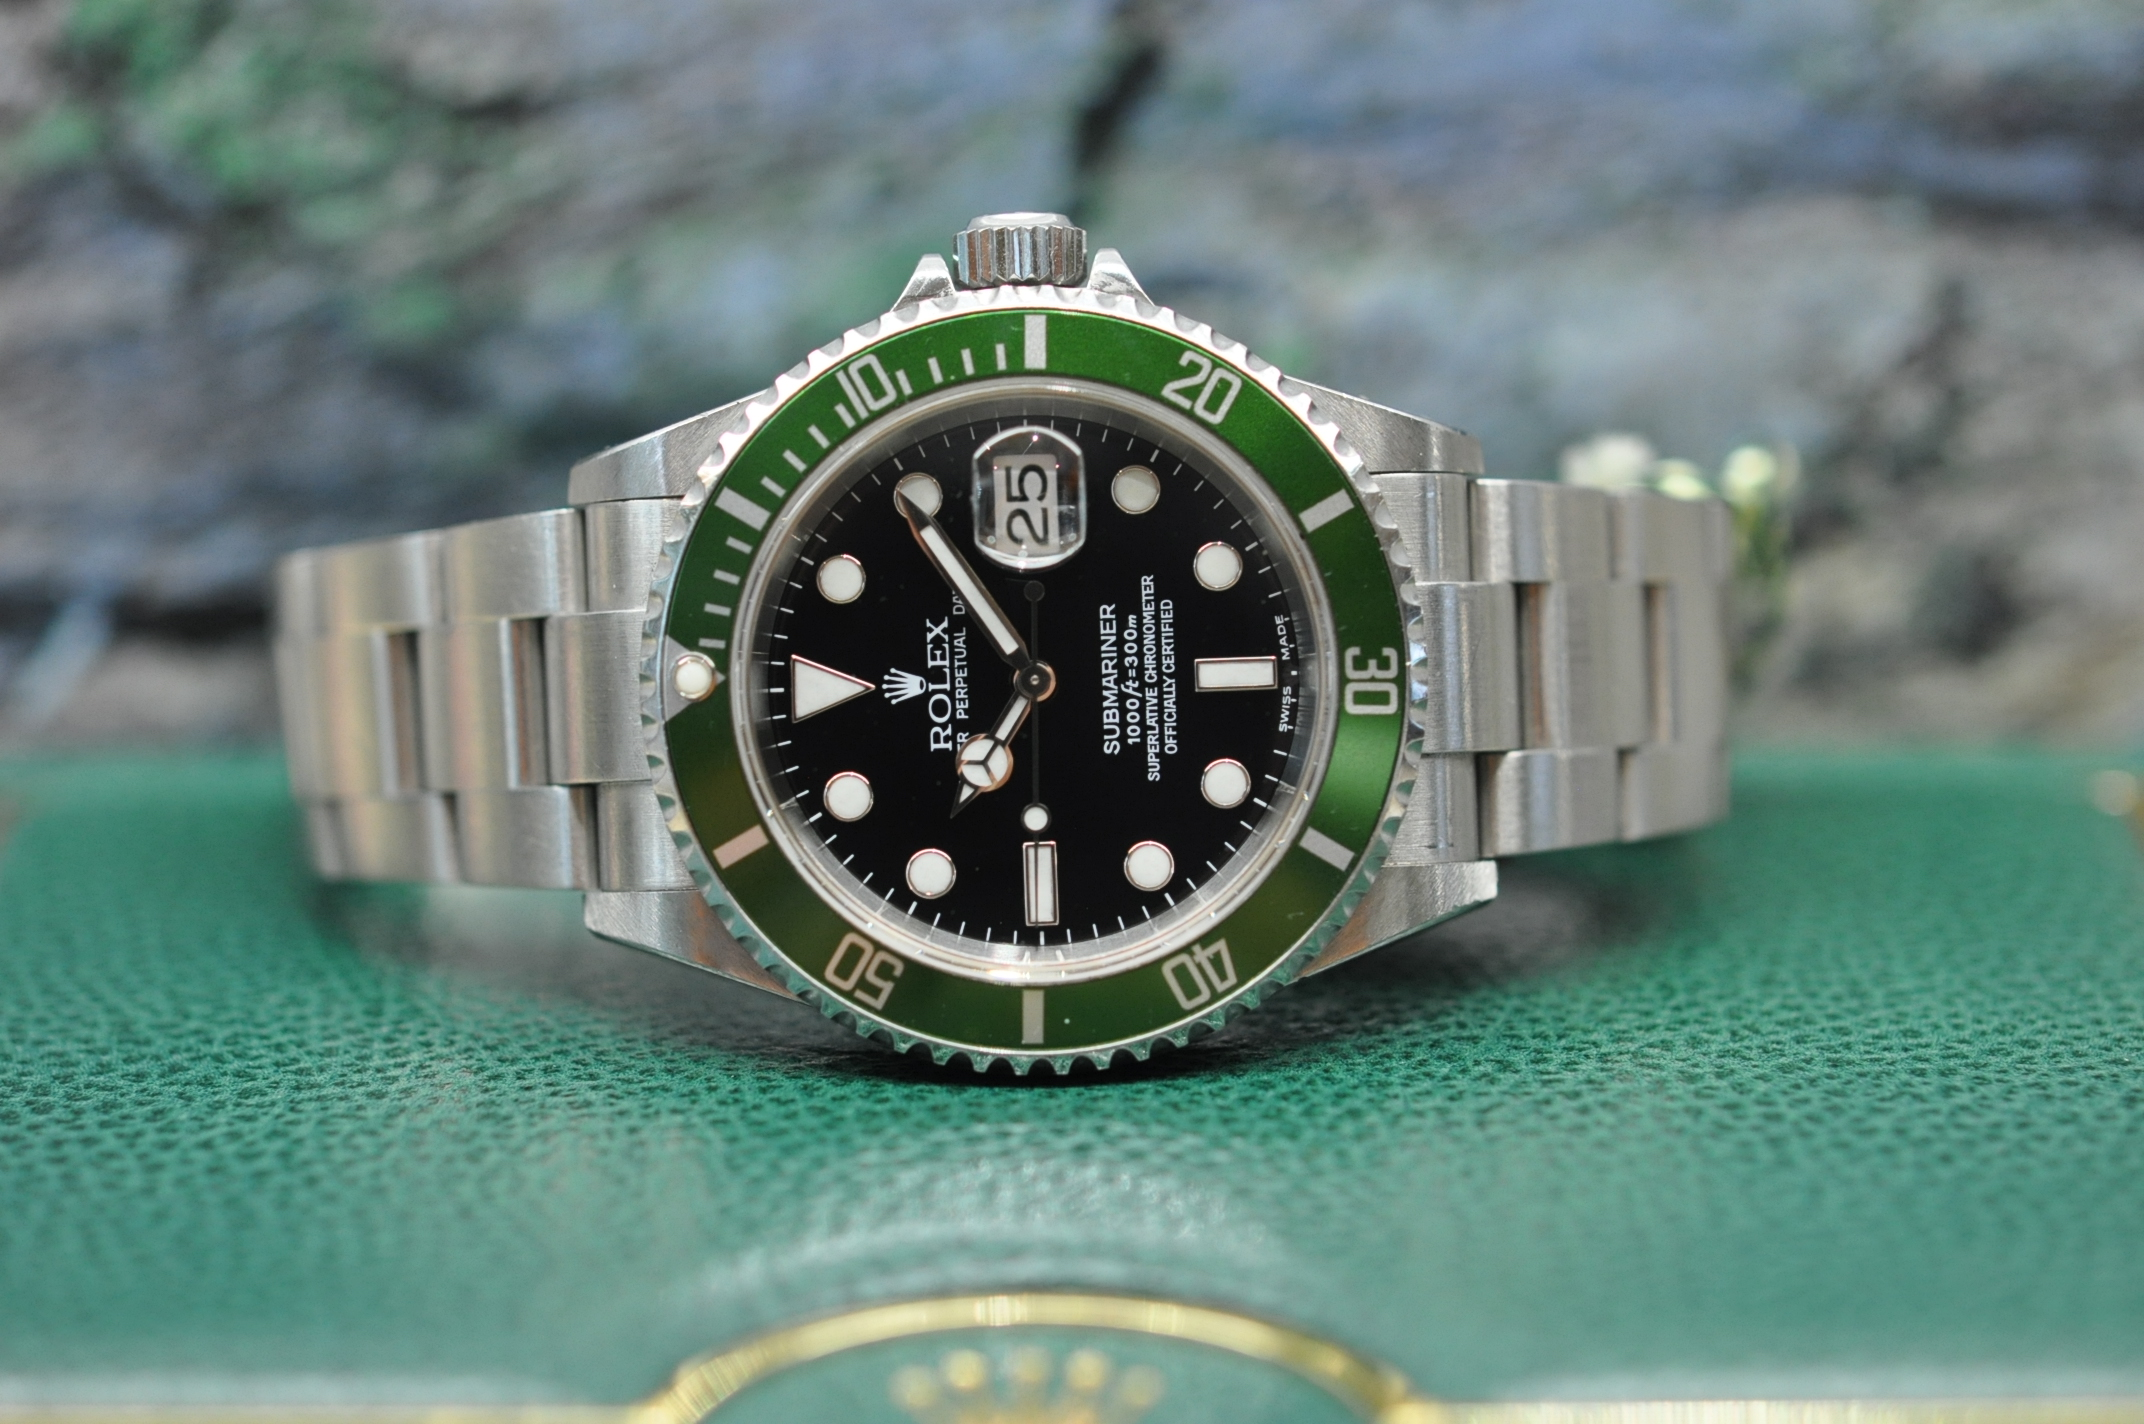 2003 'Flat 4' Submariner LV